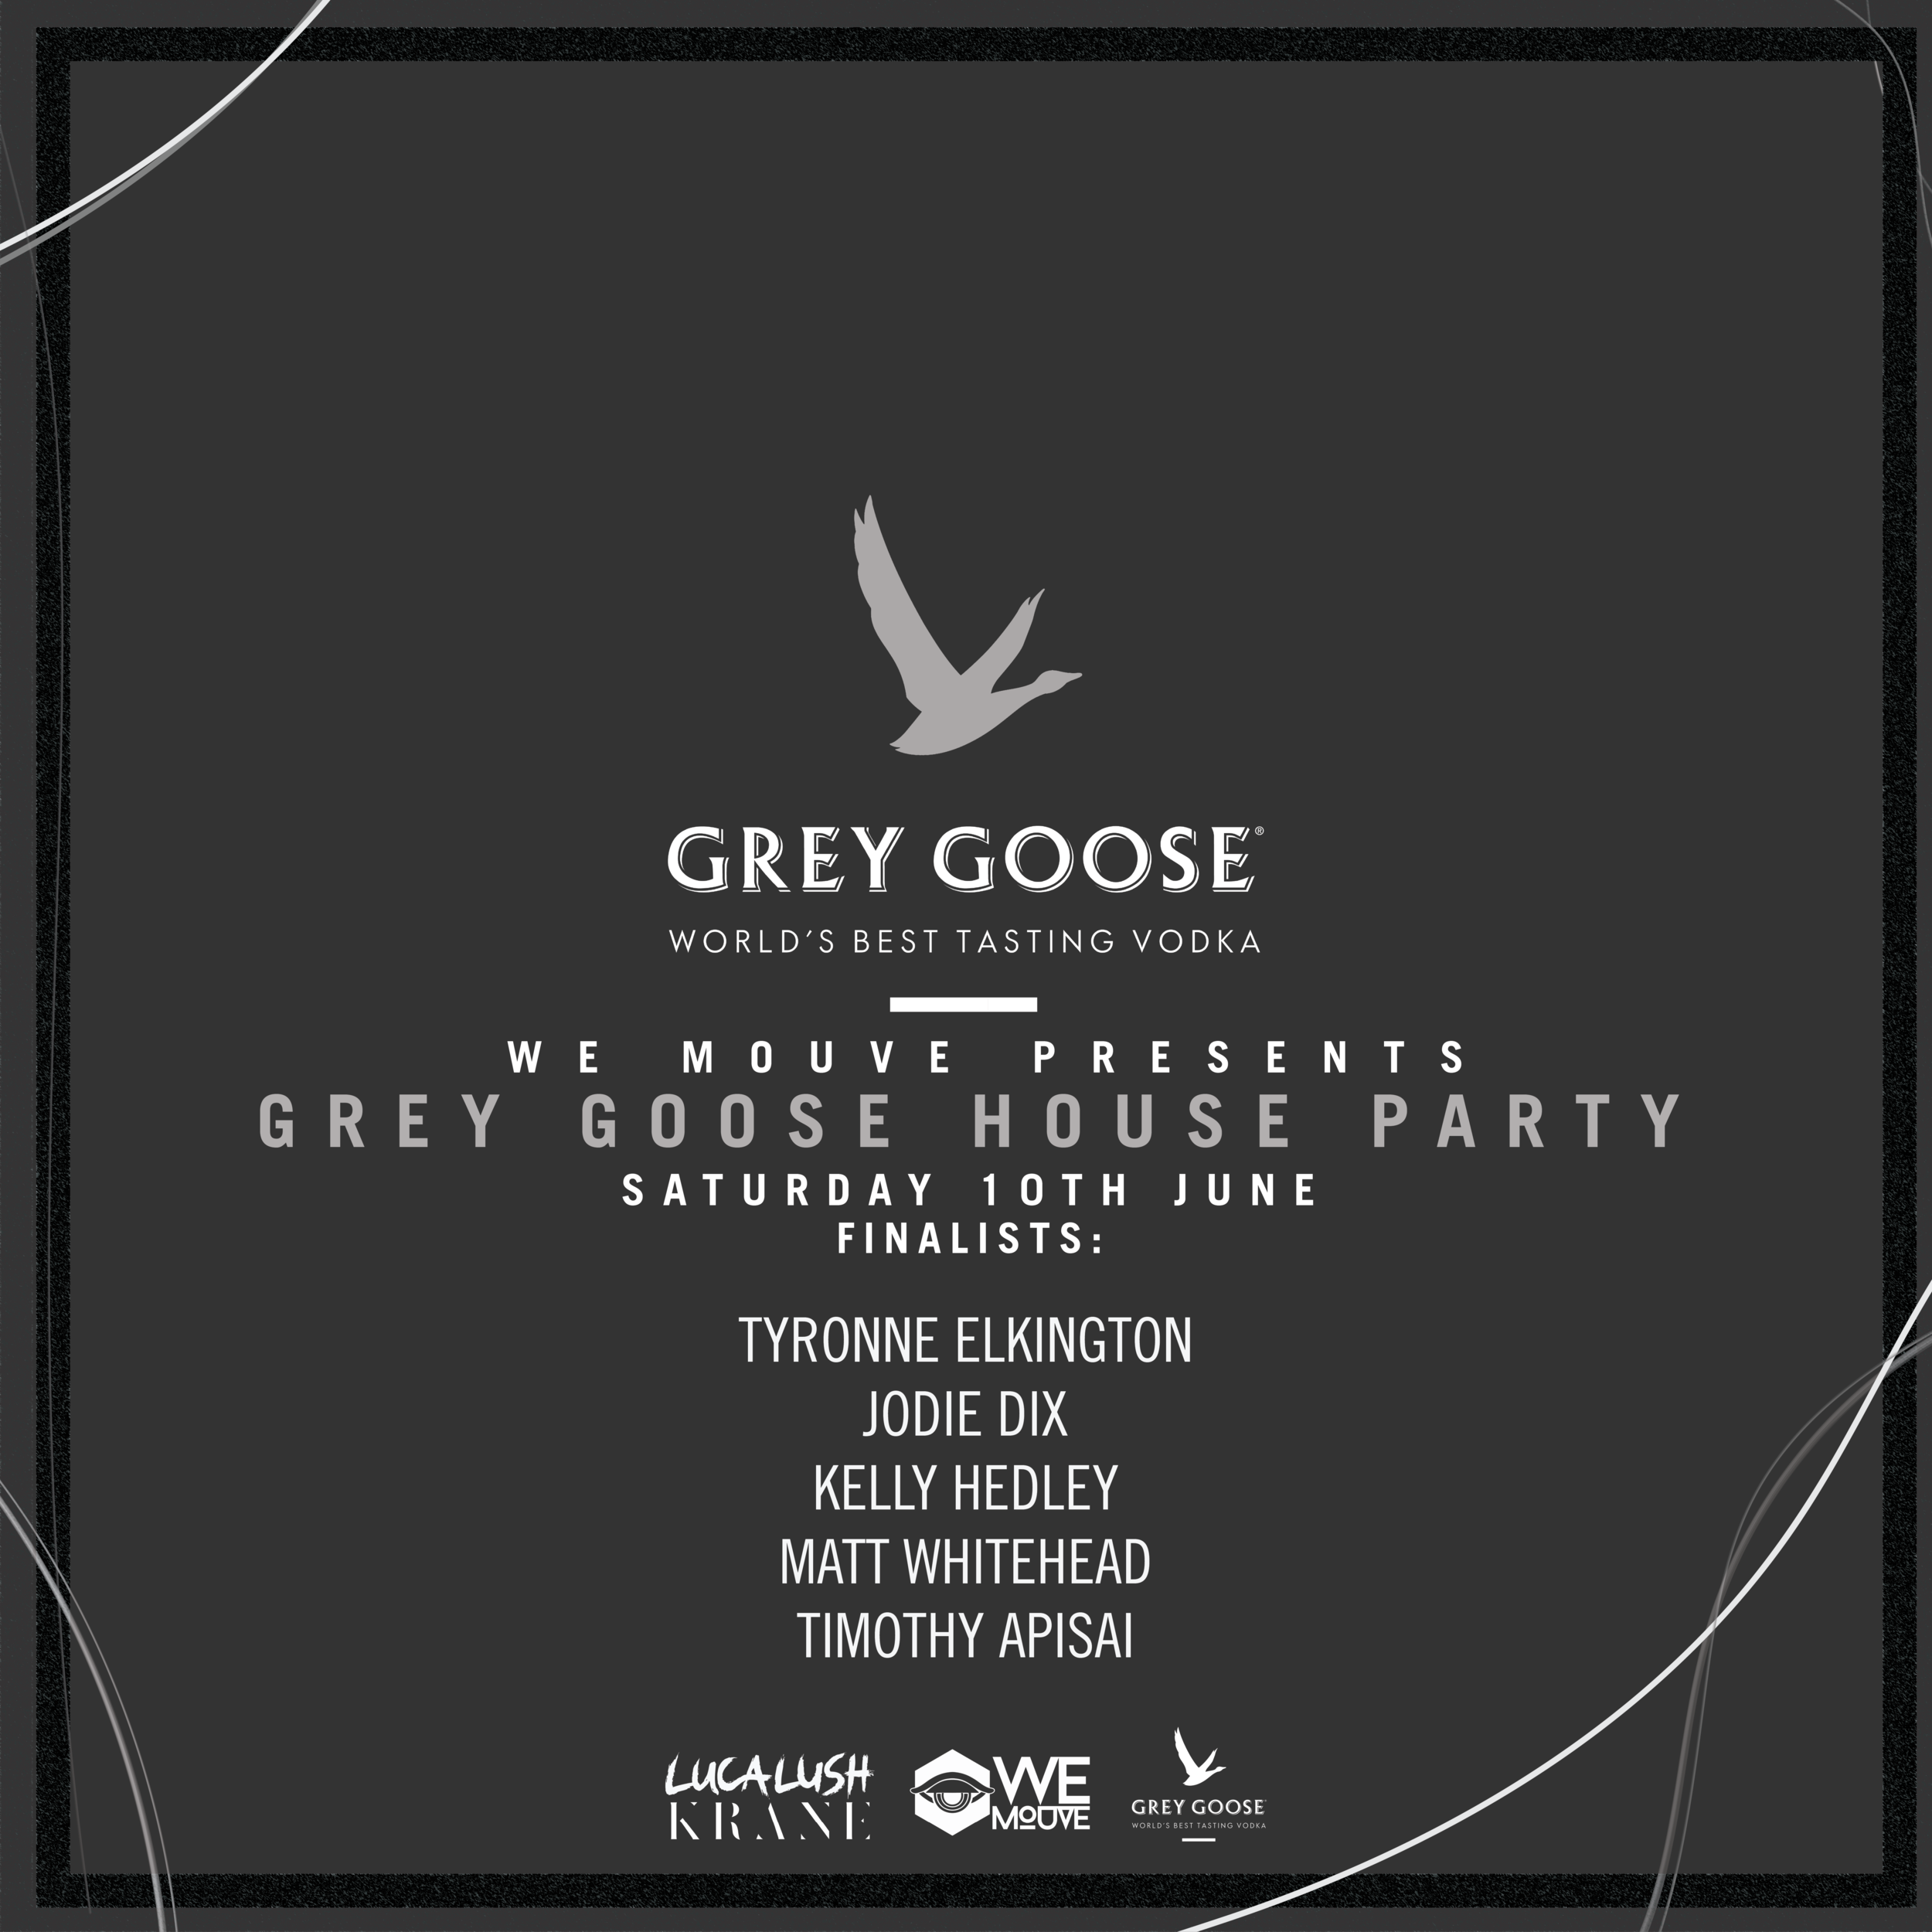 Grey Goose House Party - Poster 1-01.png